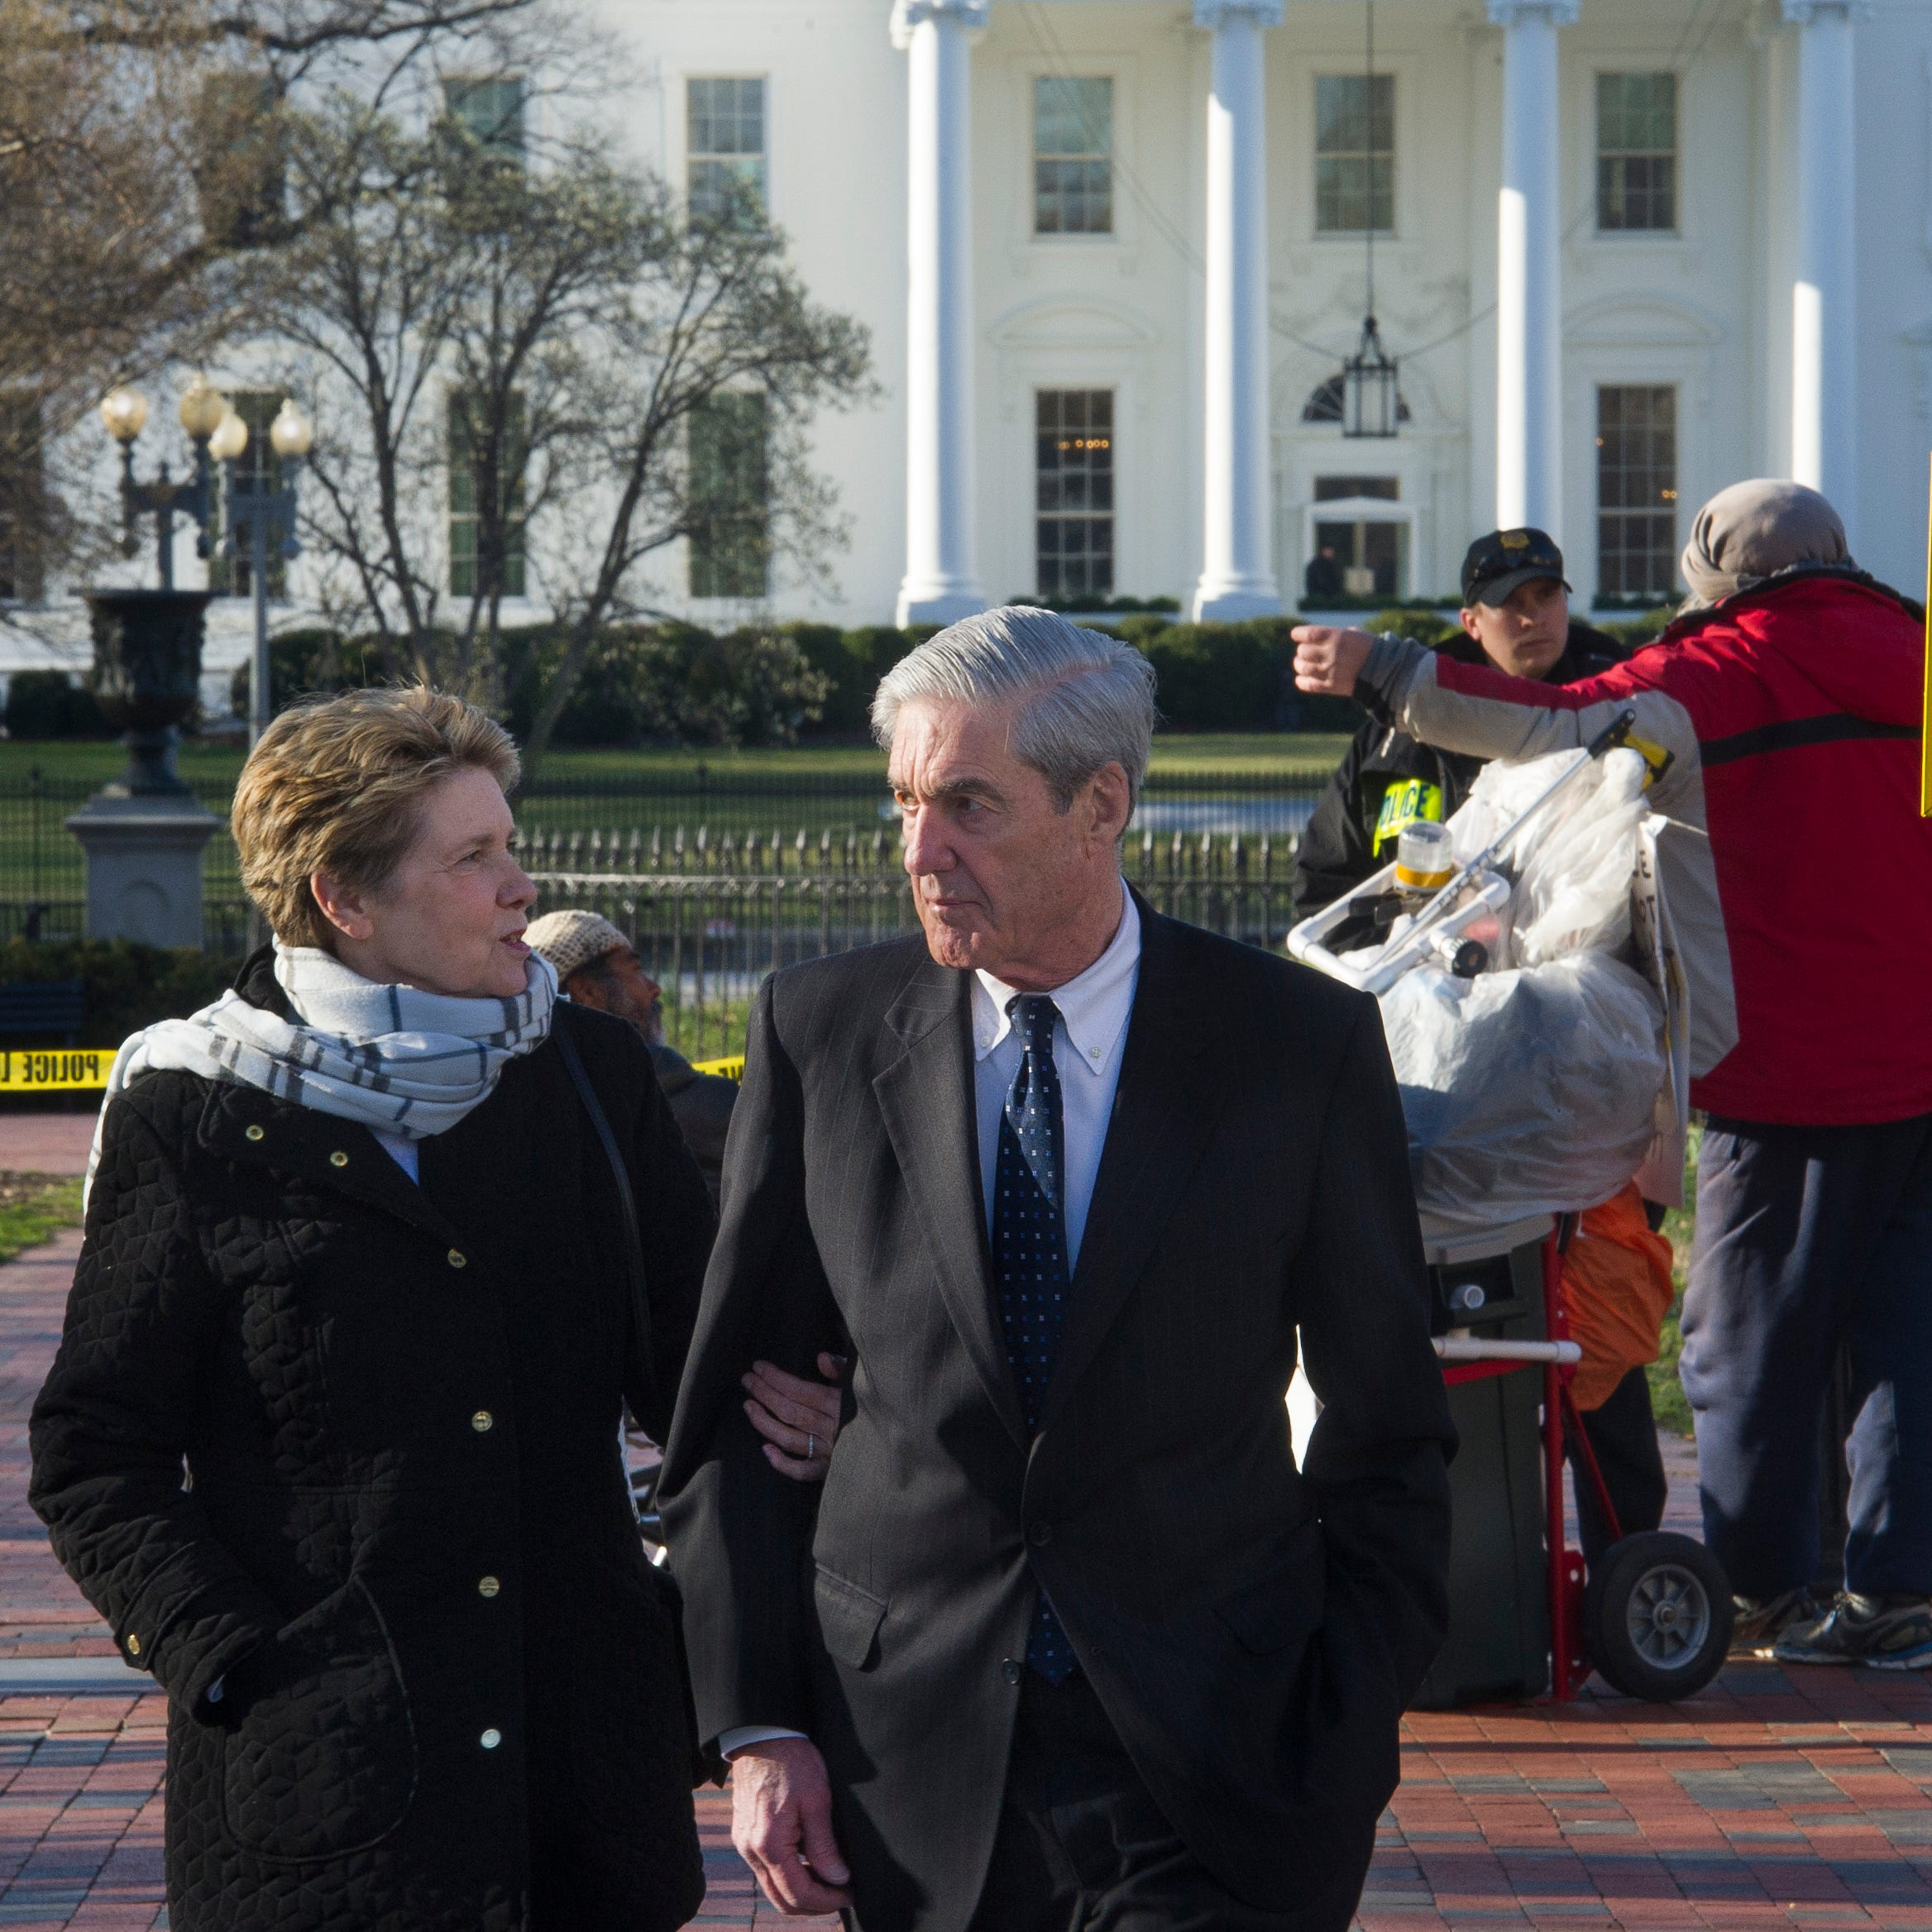 Special Counsel Robert Mueller, and his wife Ann, walk past the White House, to St. John's Episcopal Church for morning services, March 24, 2019 in Washington. Mueller closed his long and contentious Russia investigation with no new charges, ending the probe that has cast a dark shadow over Donald Trump's presidency.